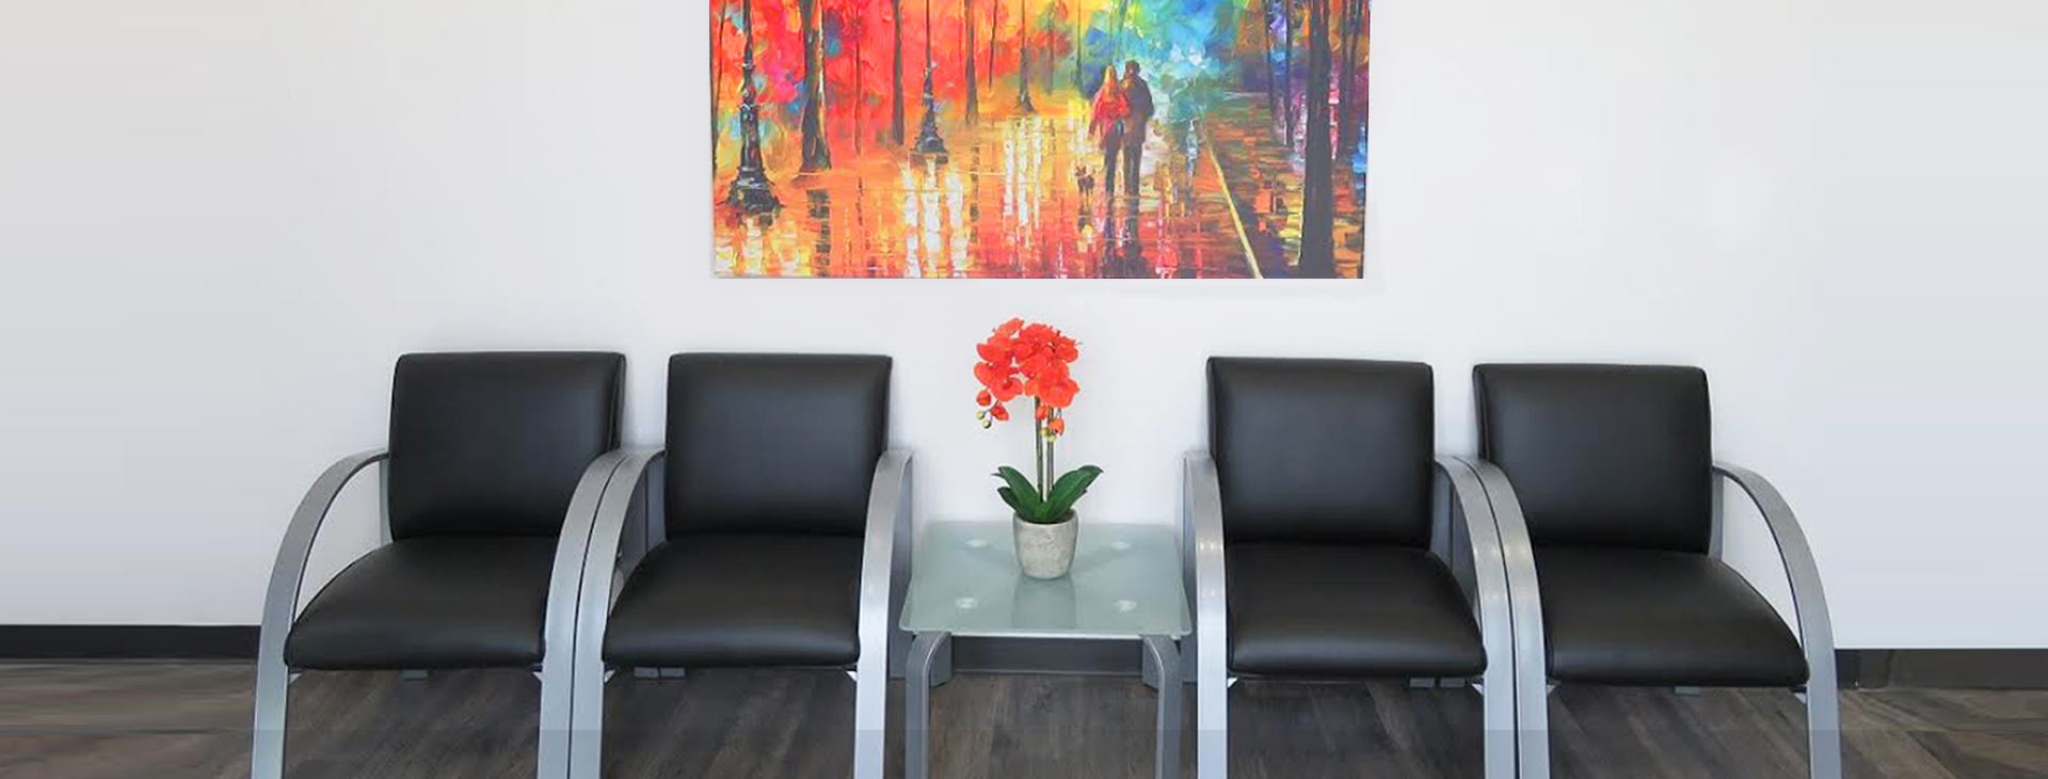 Mira Vista Surgical Dermatology | Dermatology at 7000 Bryant Irvin Rd #100 - Fort Worth TX - Reviews - Photos - Phone Number